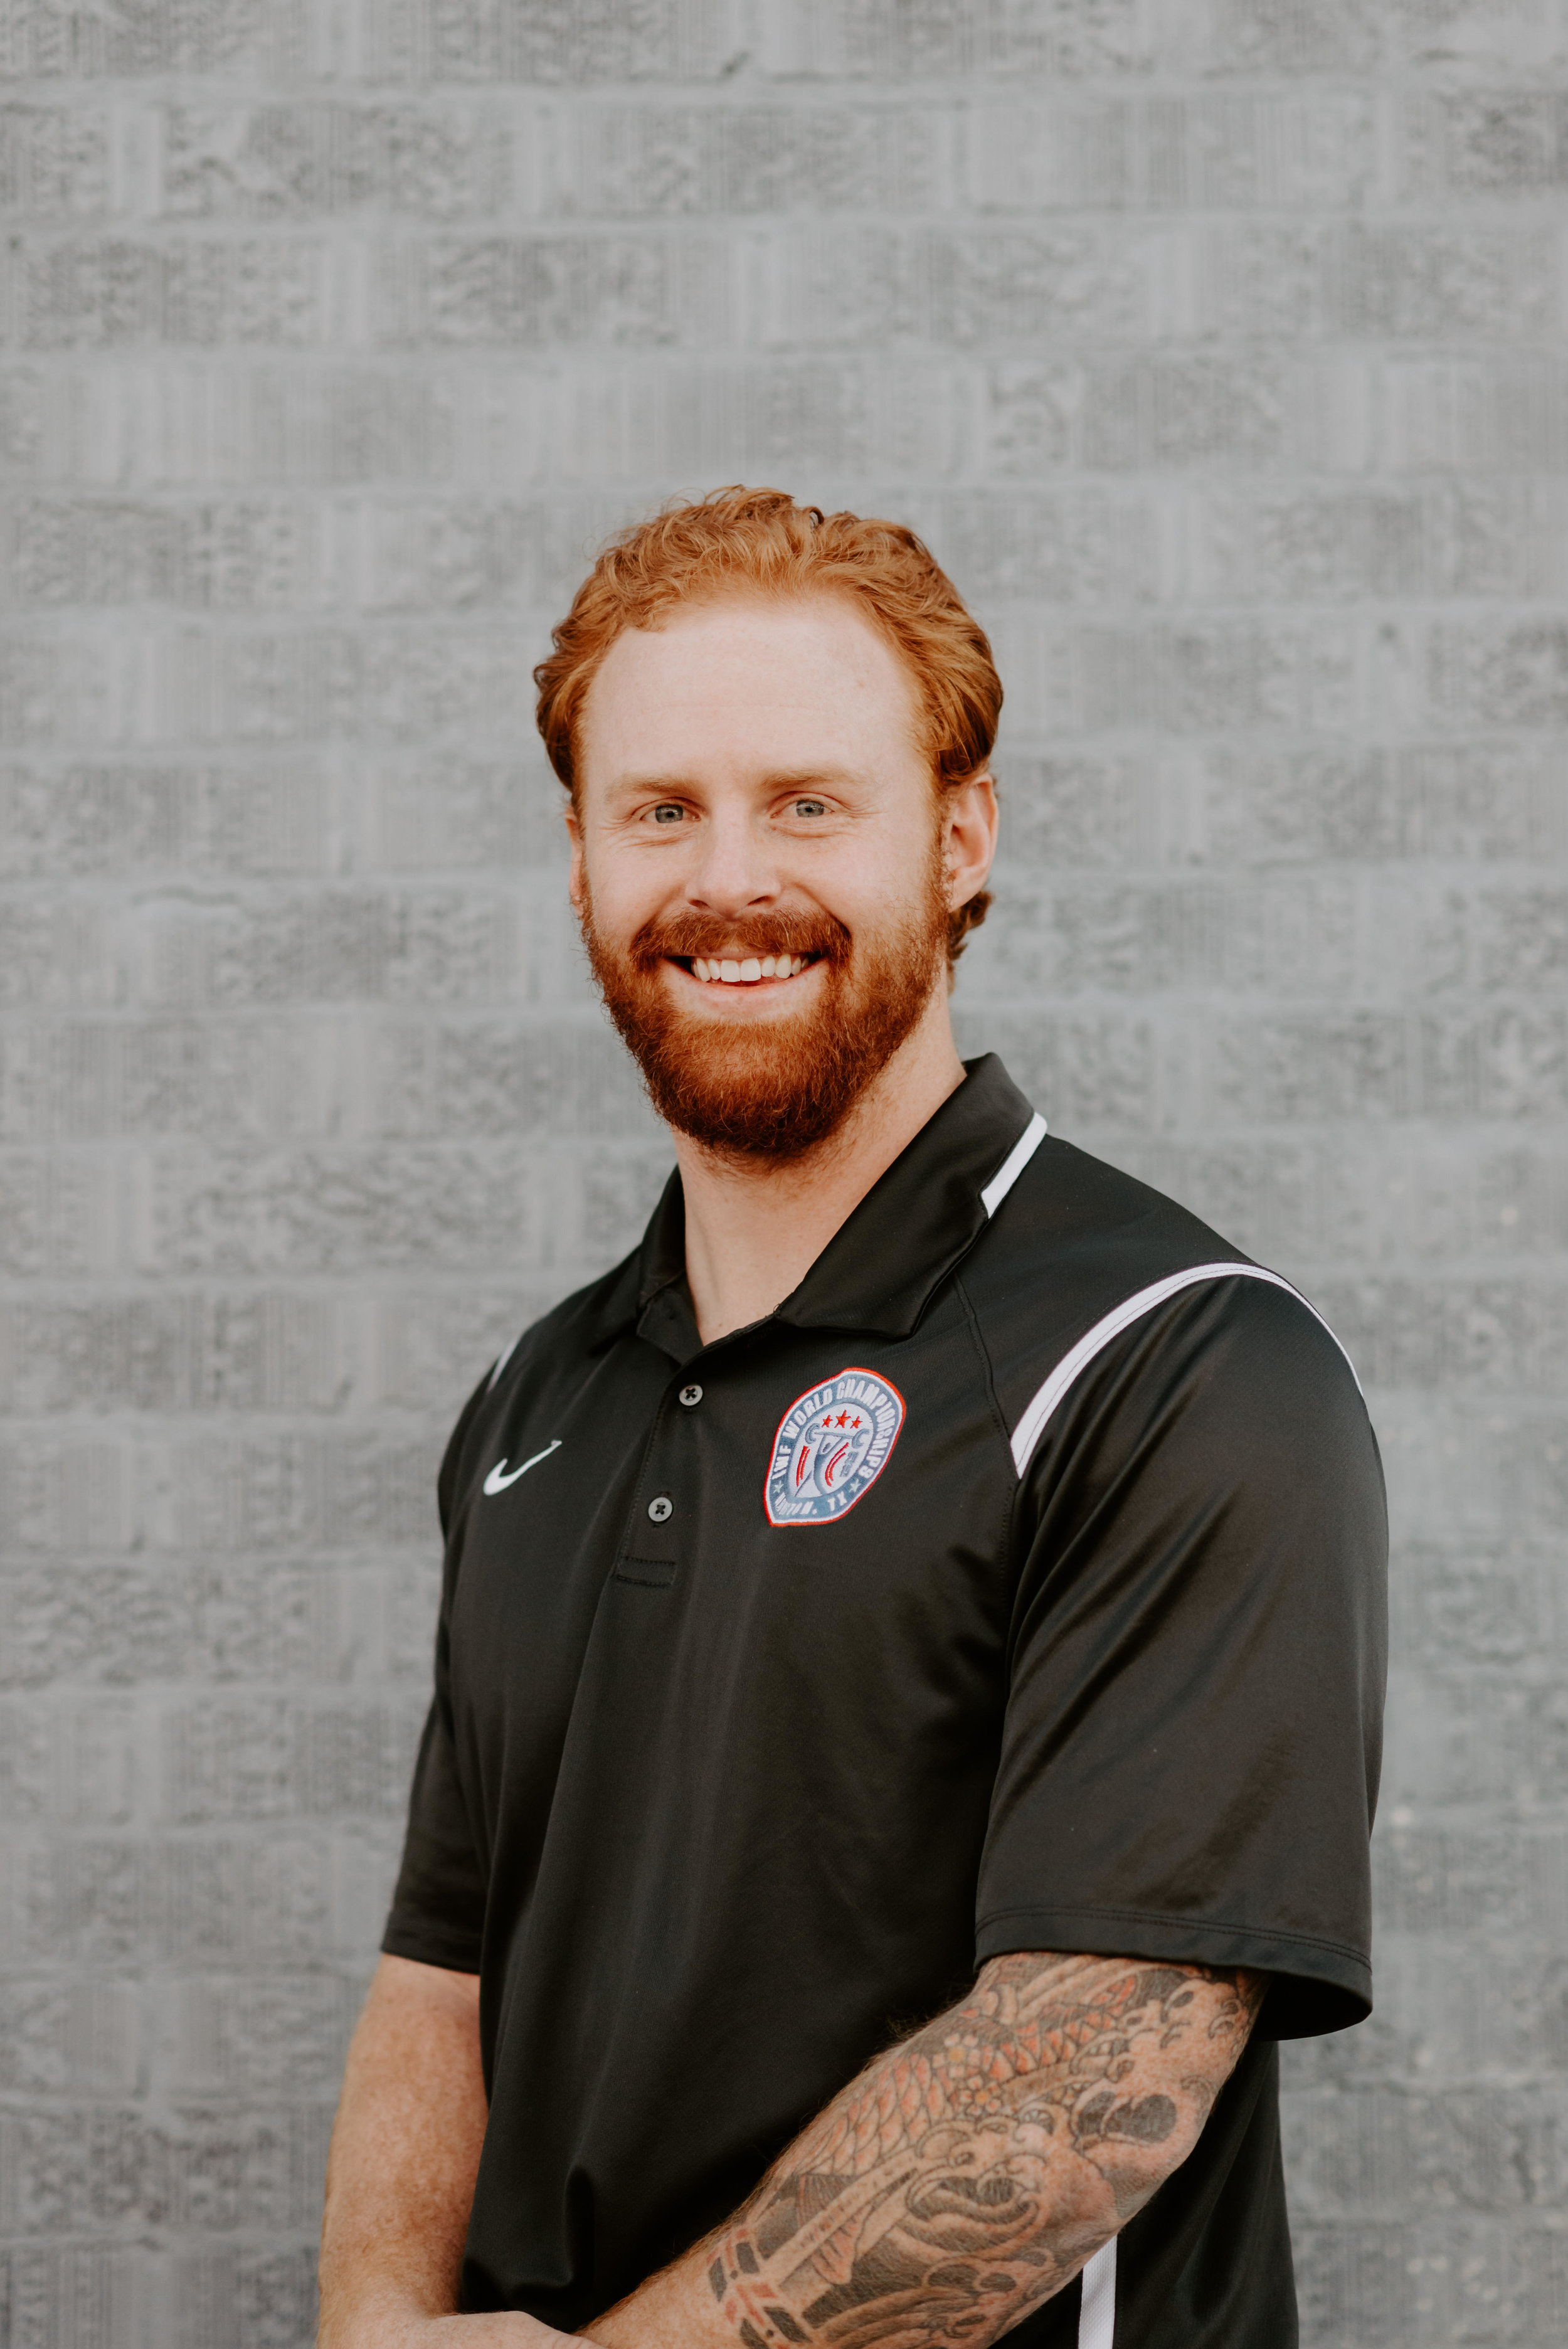 Darren Hansen, BS Exercise Science, CSCS, USAW National Coach, Owner of HansenAthletics